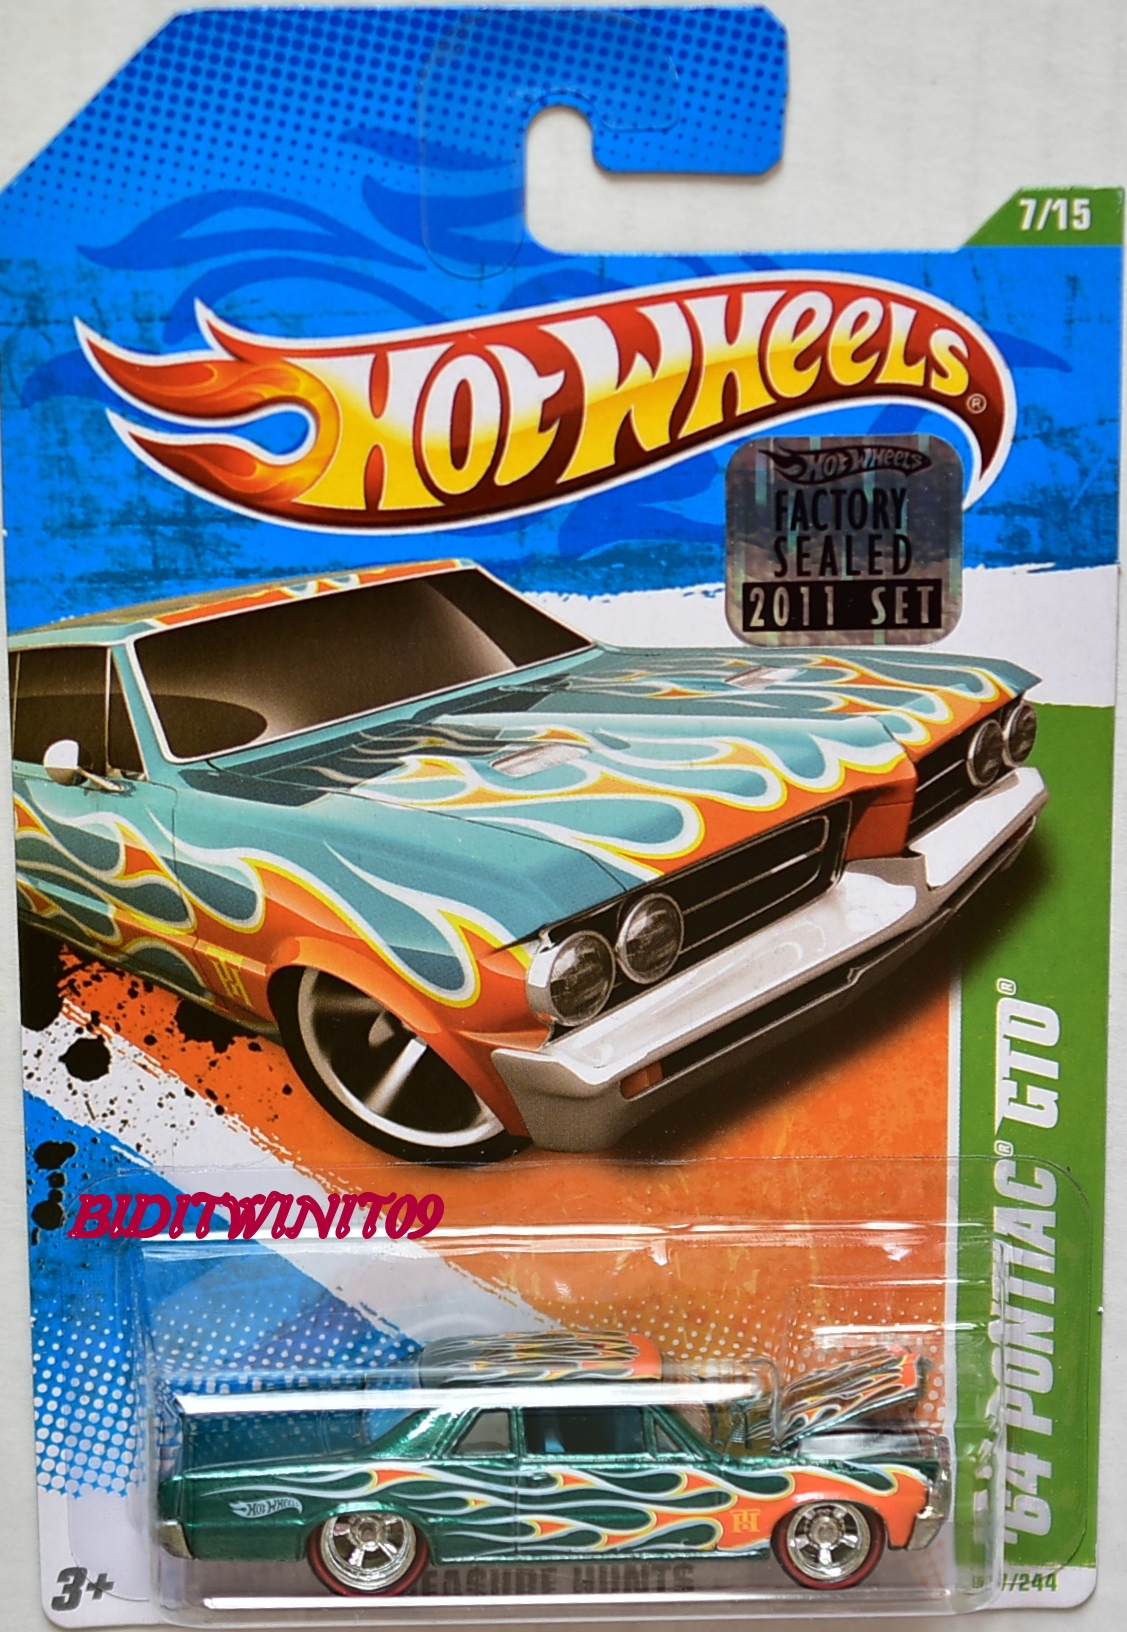 HOT WHEELS 2011 SUPER TREASURE HUNT '64 PONTIAC GTO FACTORY SEALED